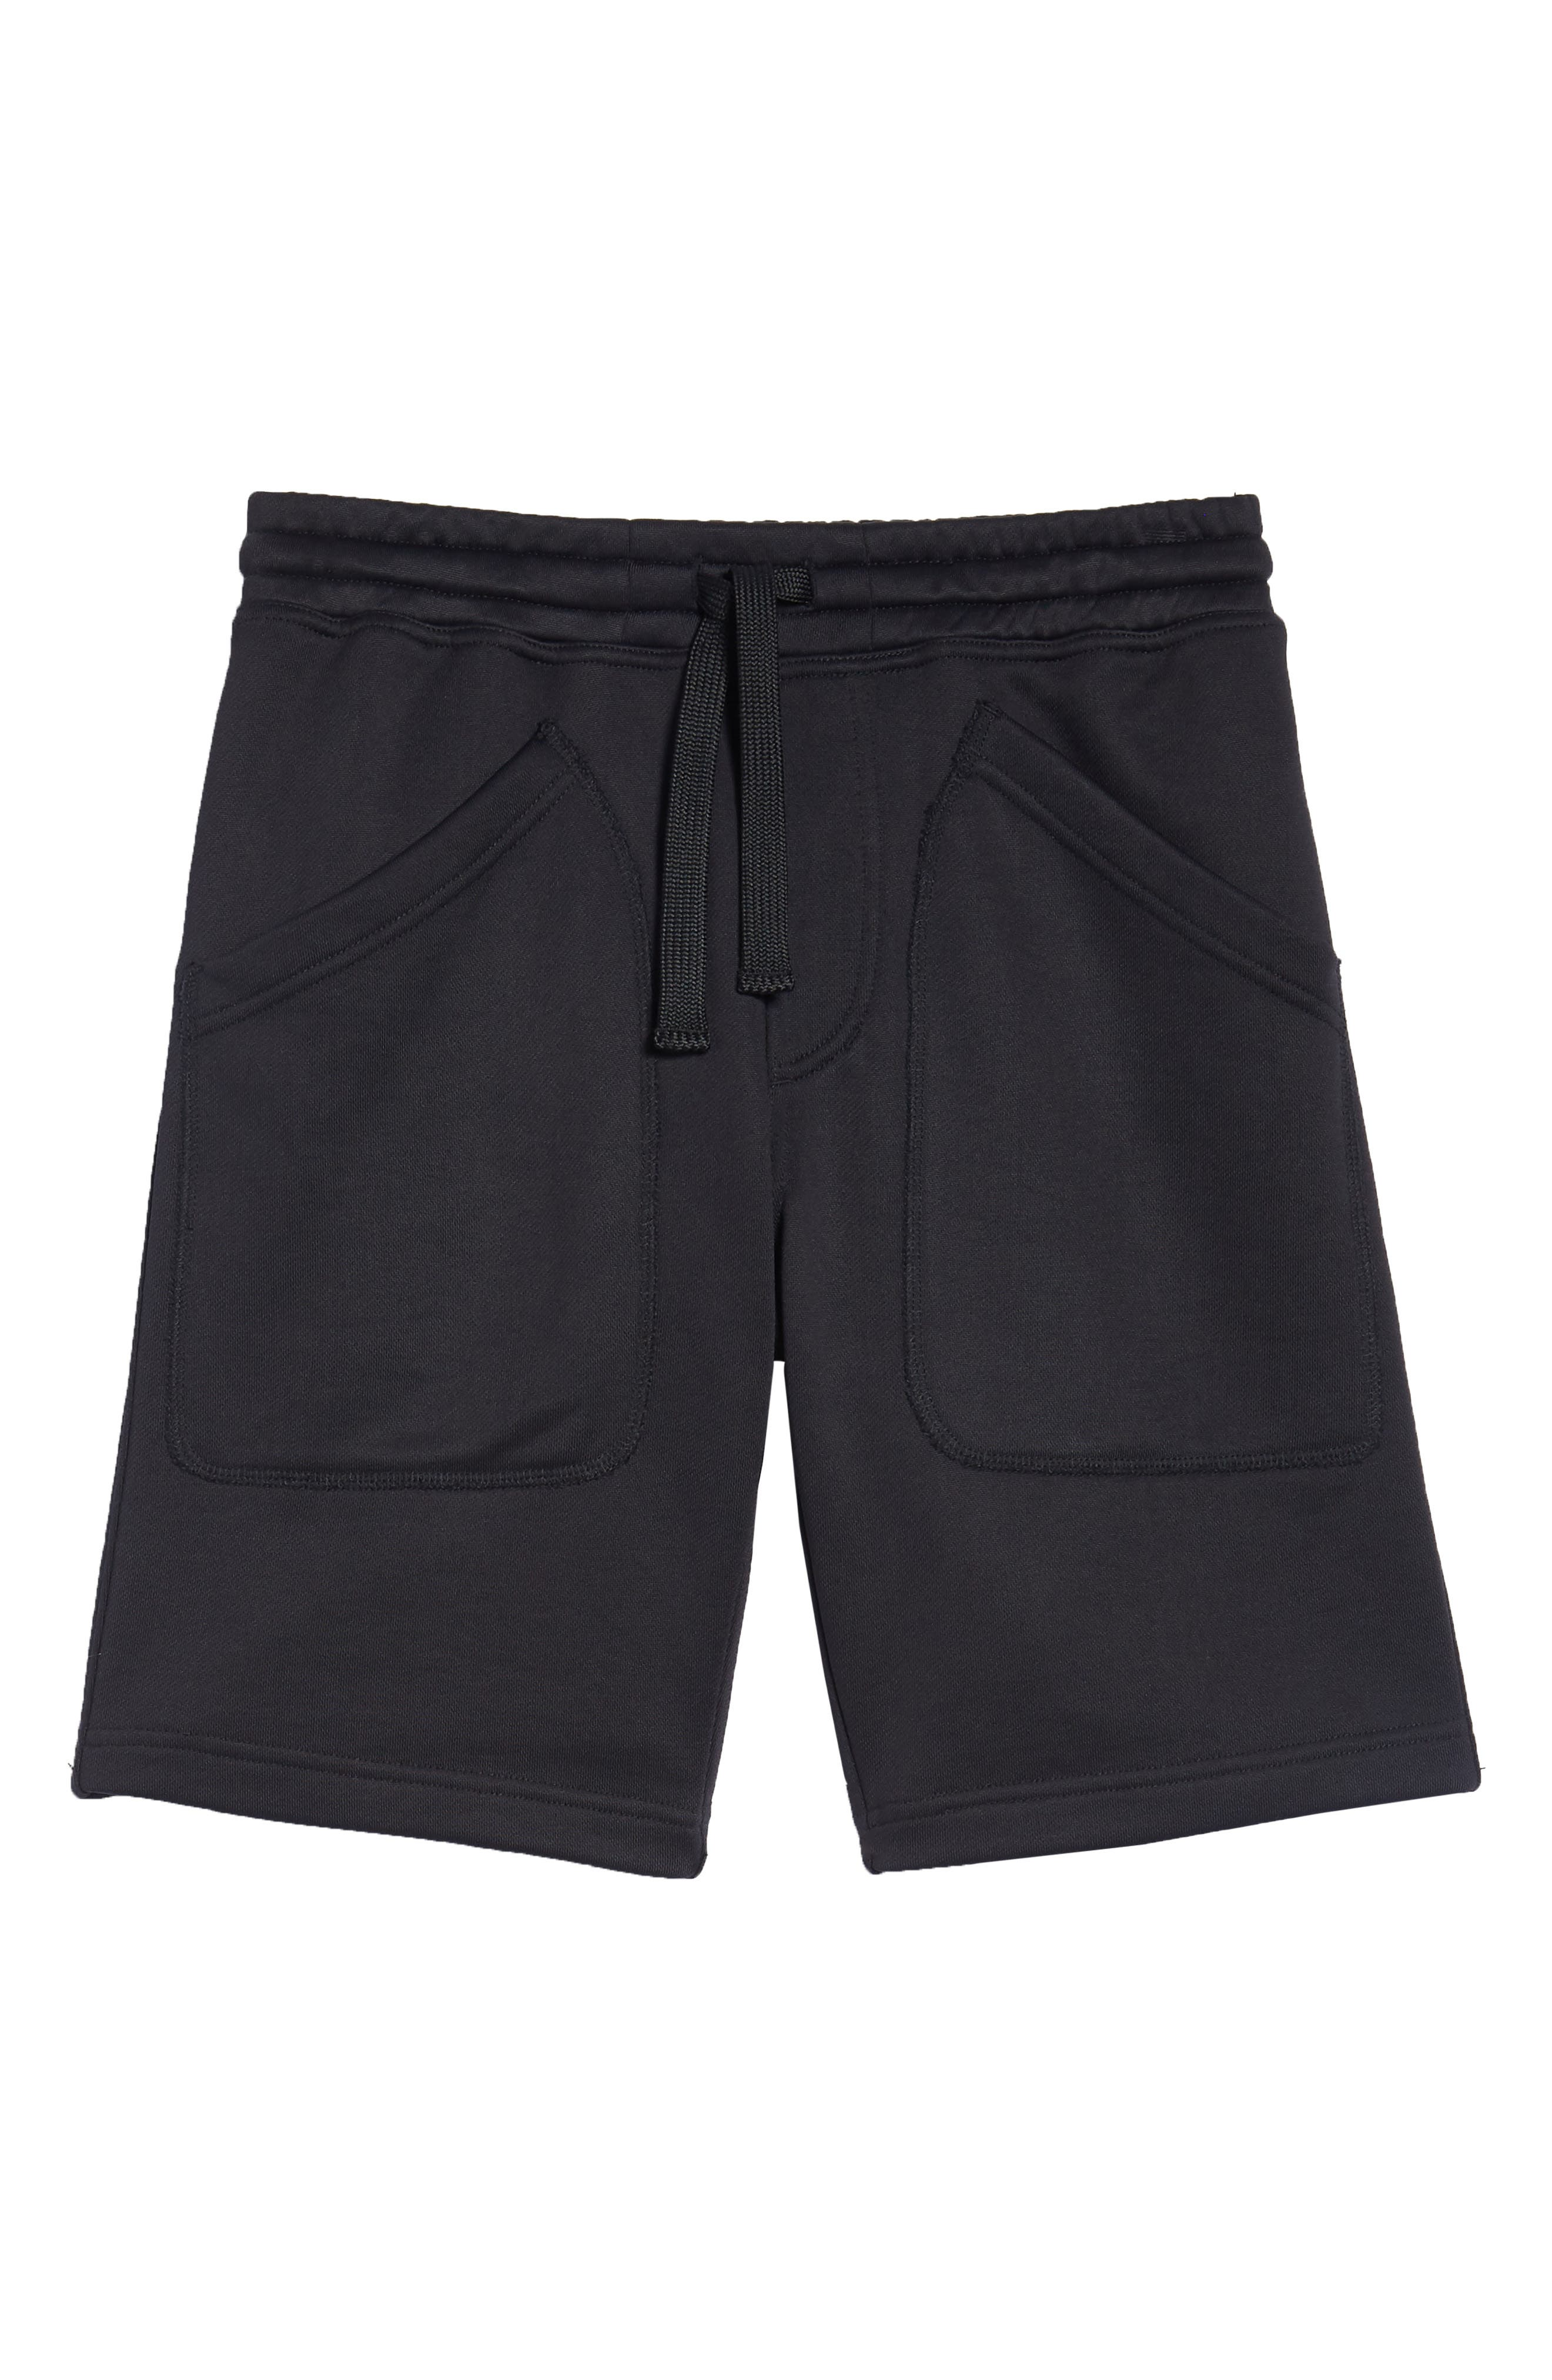 Lux French Terry Shorts,                             Alternate thumbnail 6, color,                             Navy Black